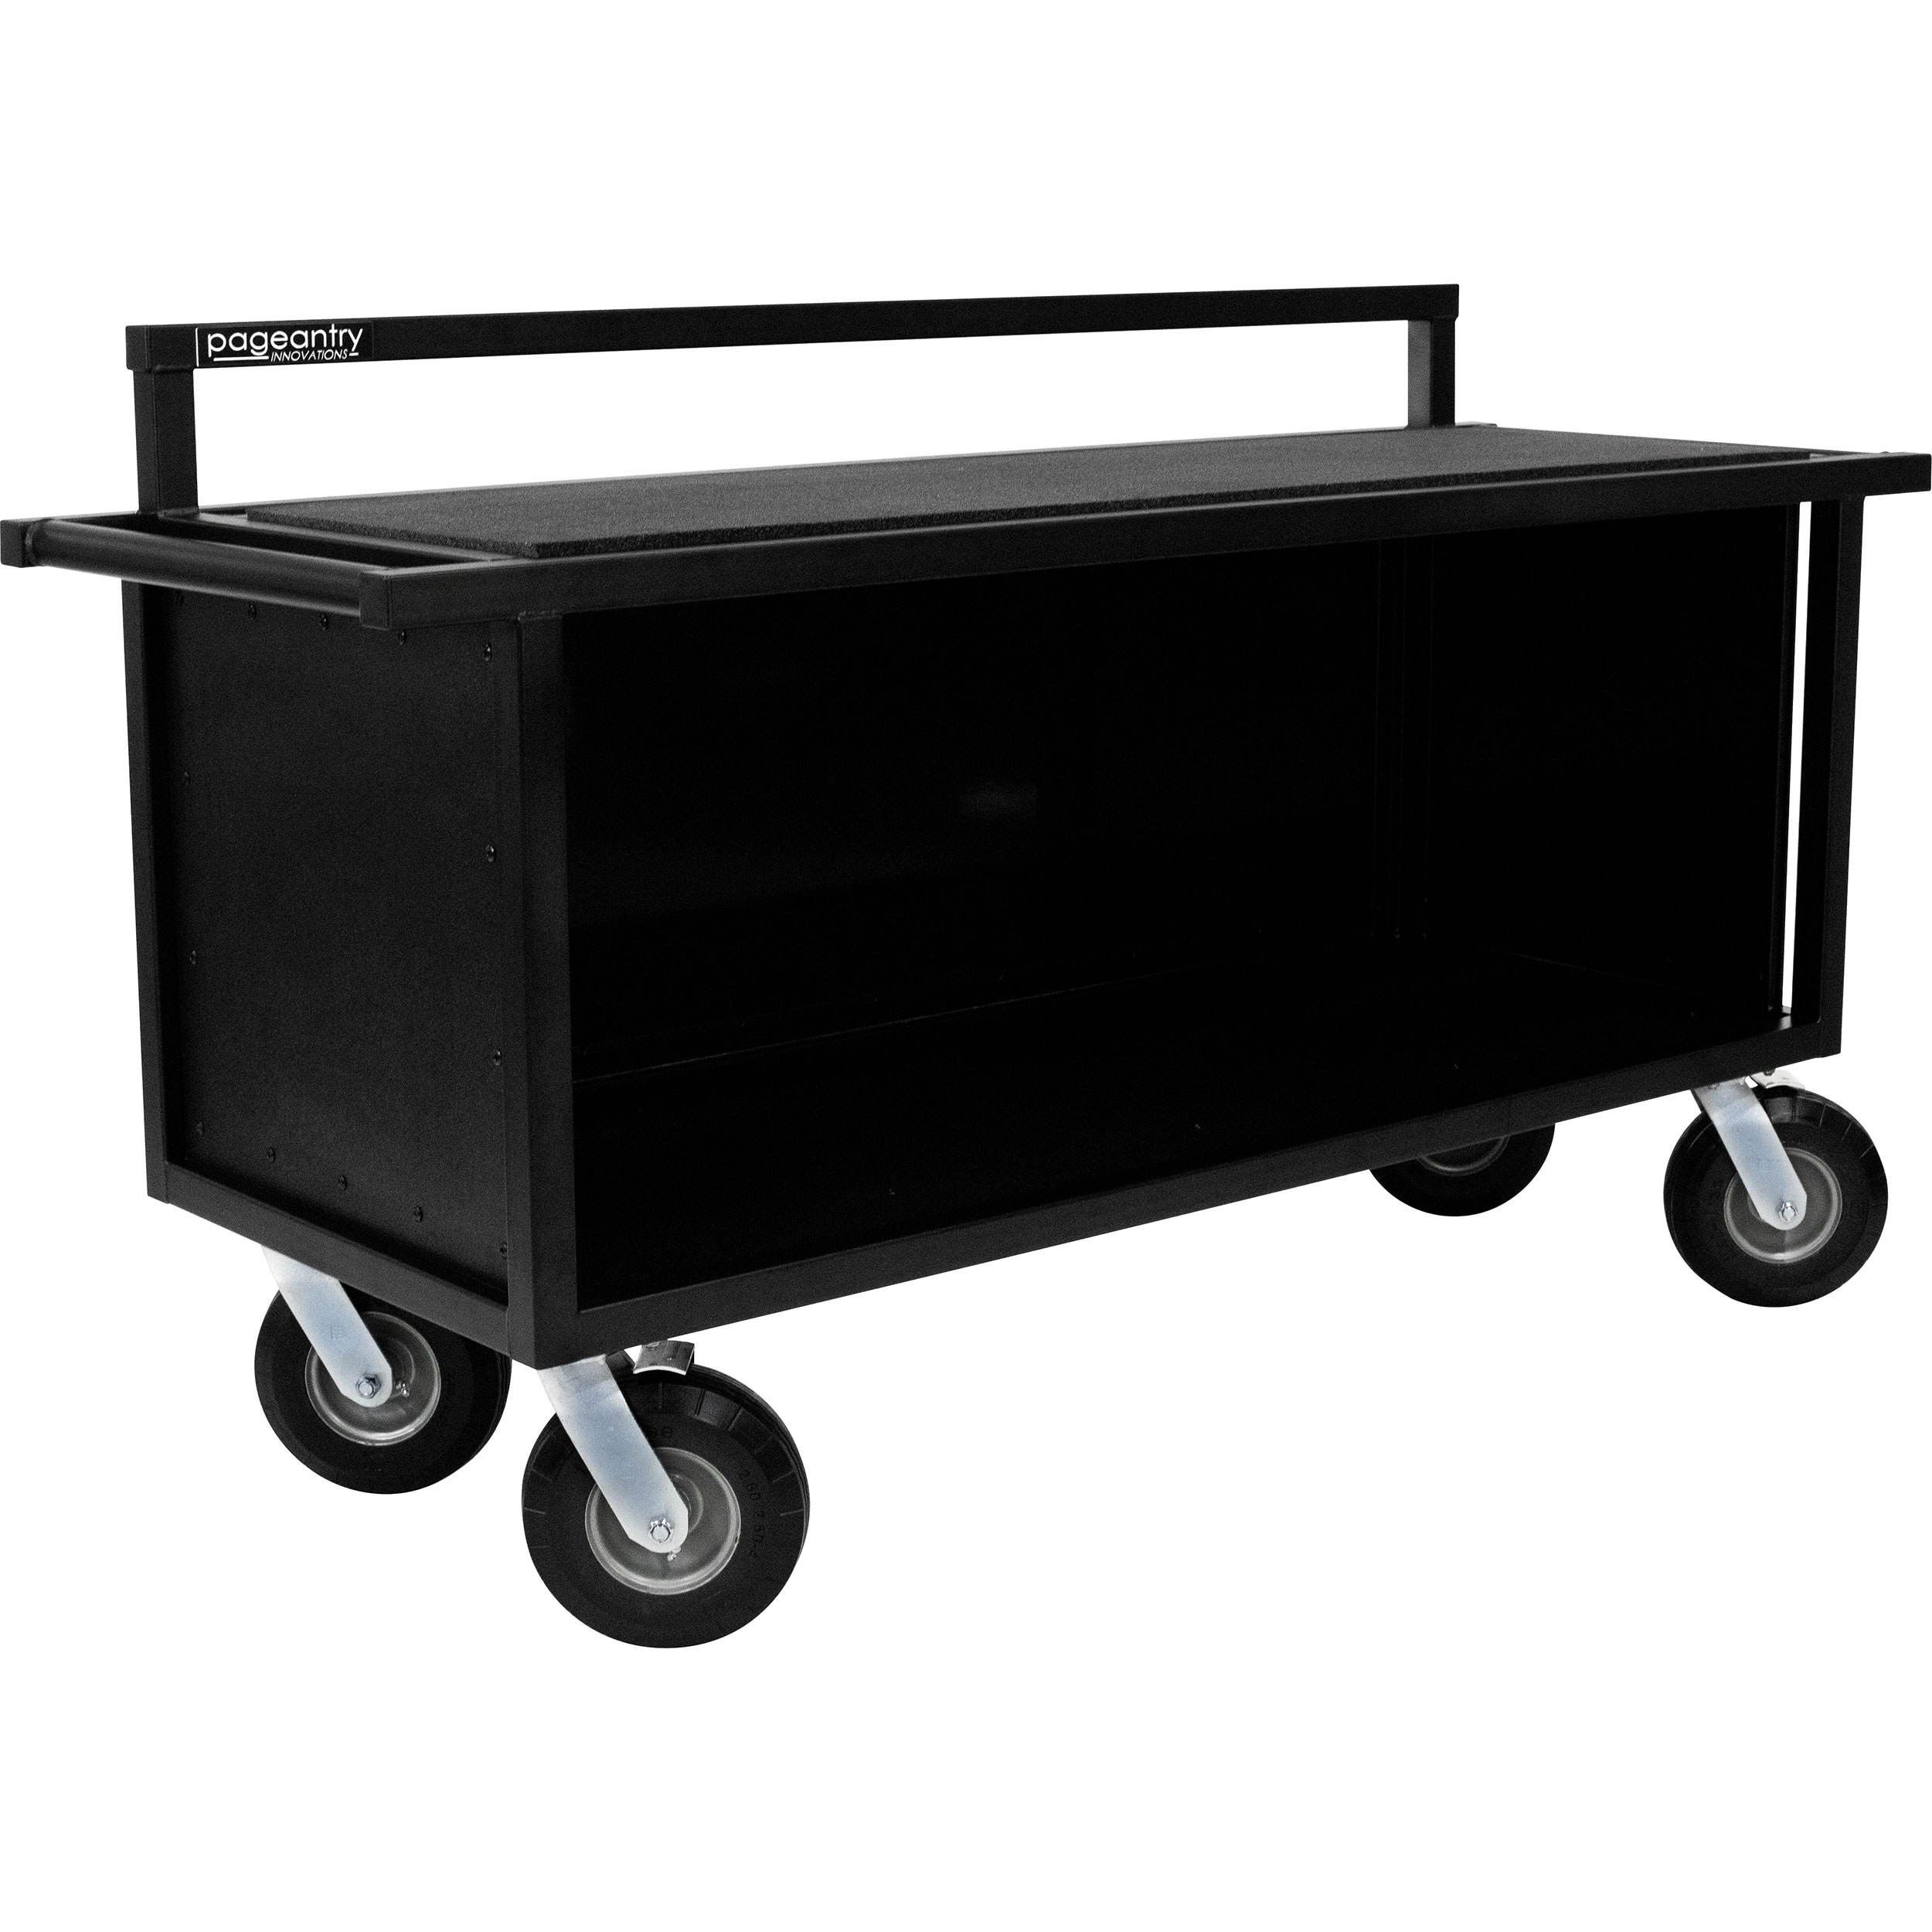 "Pageantry Innovations Stealth Series Partially Enclosed Synthesizer Cart (39"" H x 68"" W x 24"" D)"